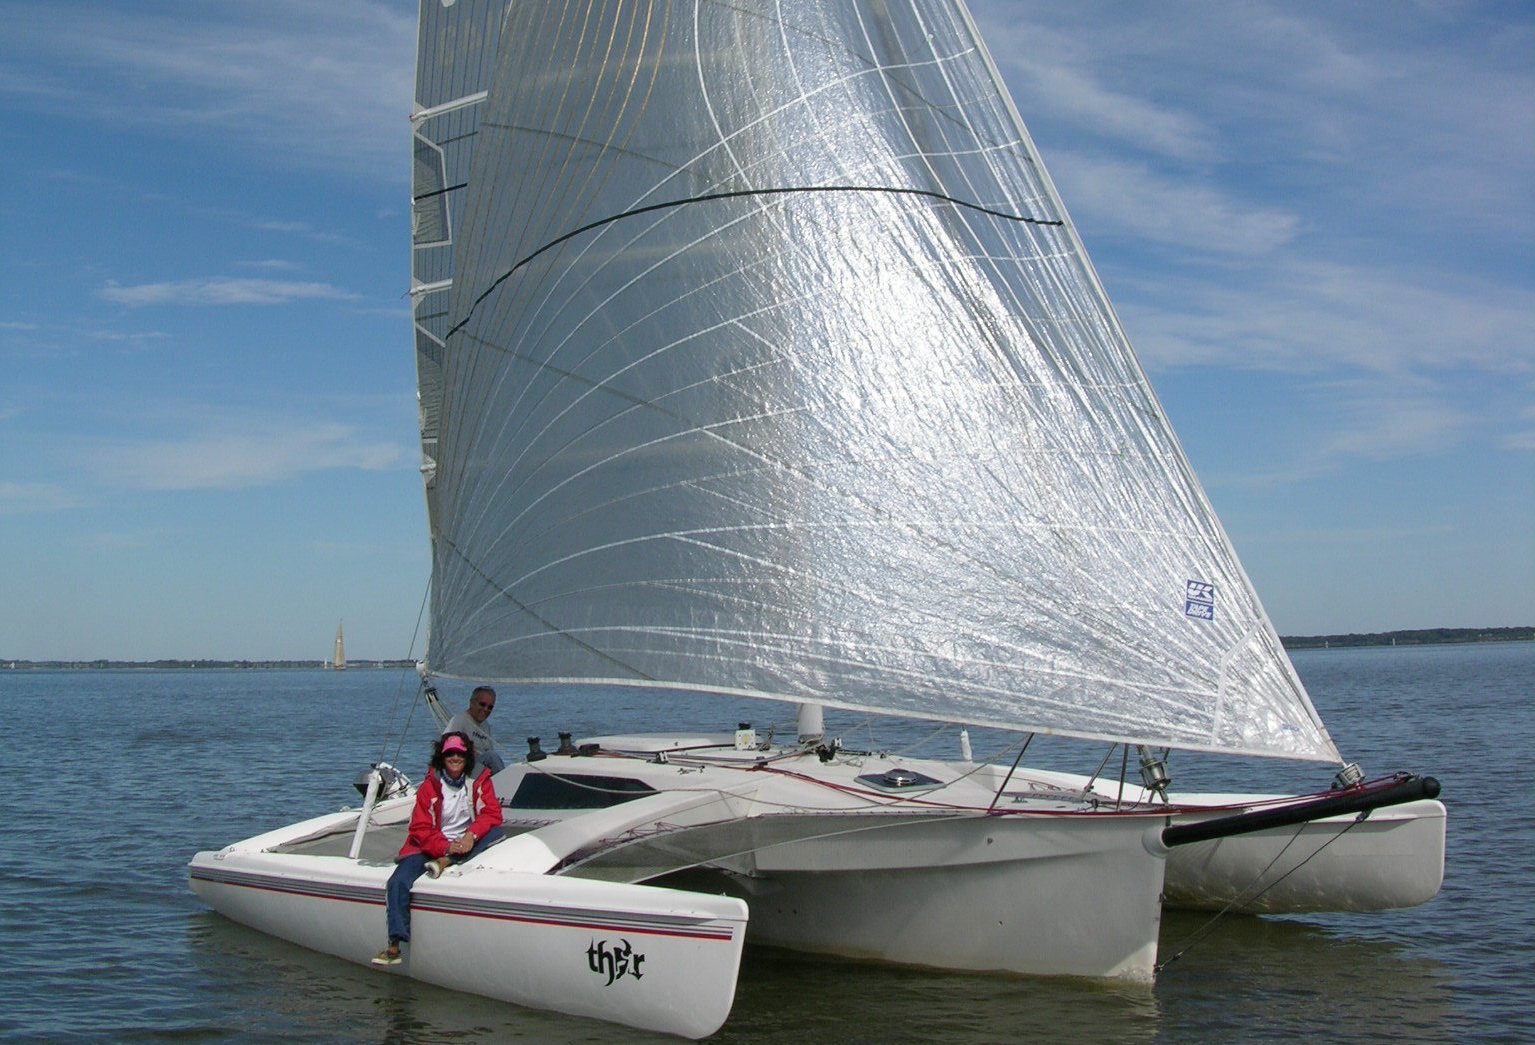 1998 Corsair F-28R trimaran Fort Walton Beach FL $49,900